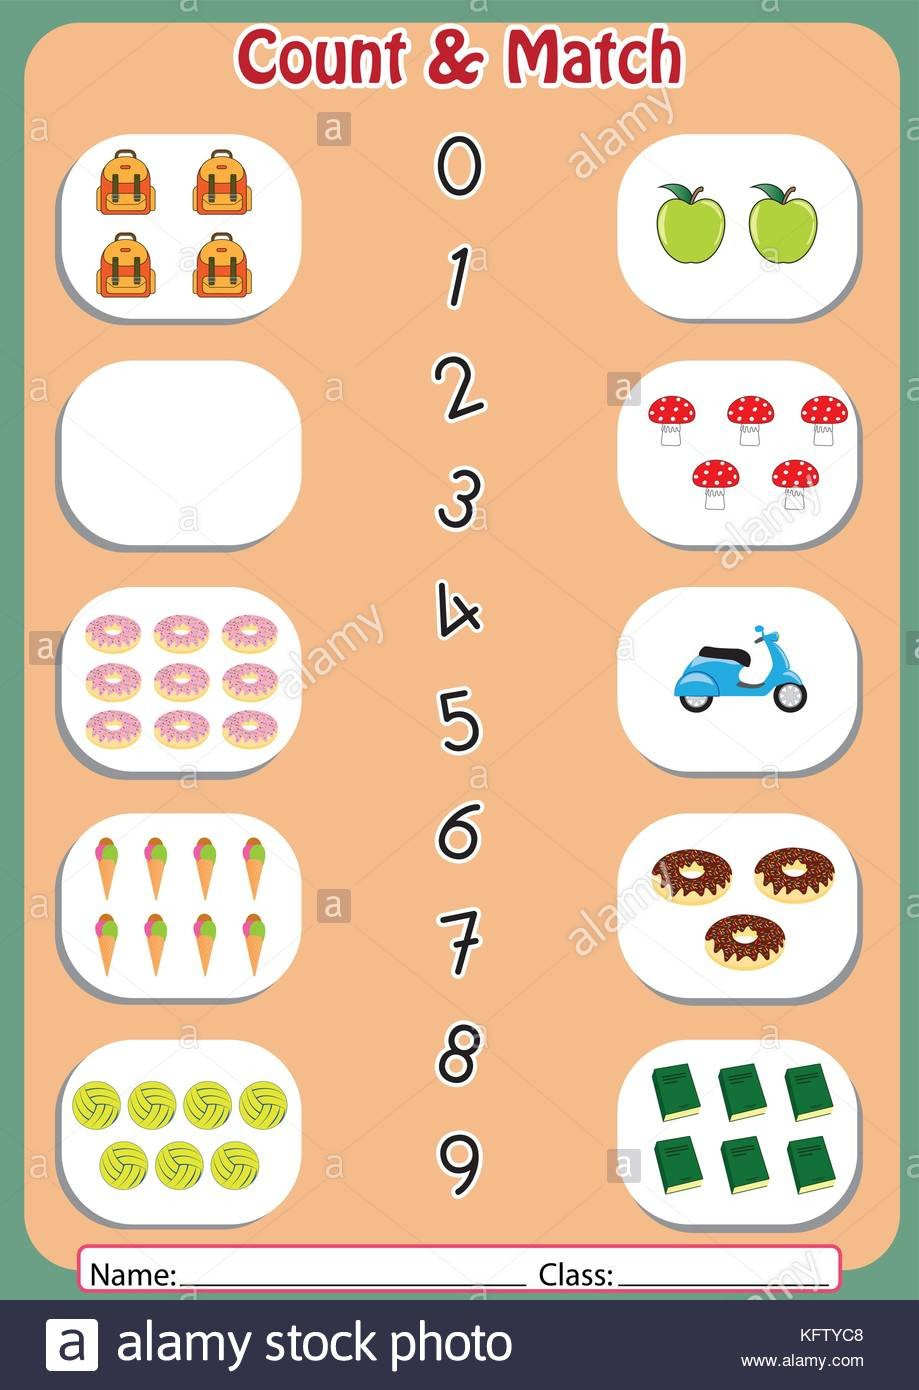 Matching Numbers Worksheets Match the Numbers to Objects Worksheet for Preschool Stock